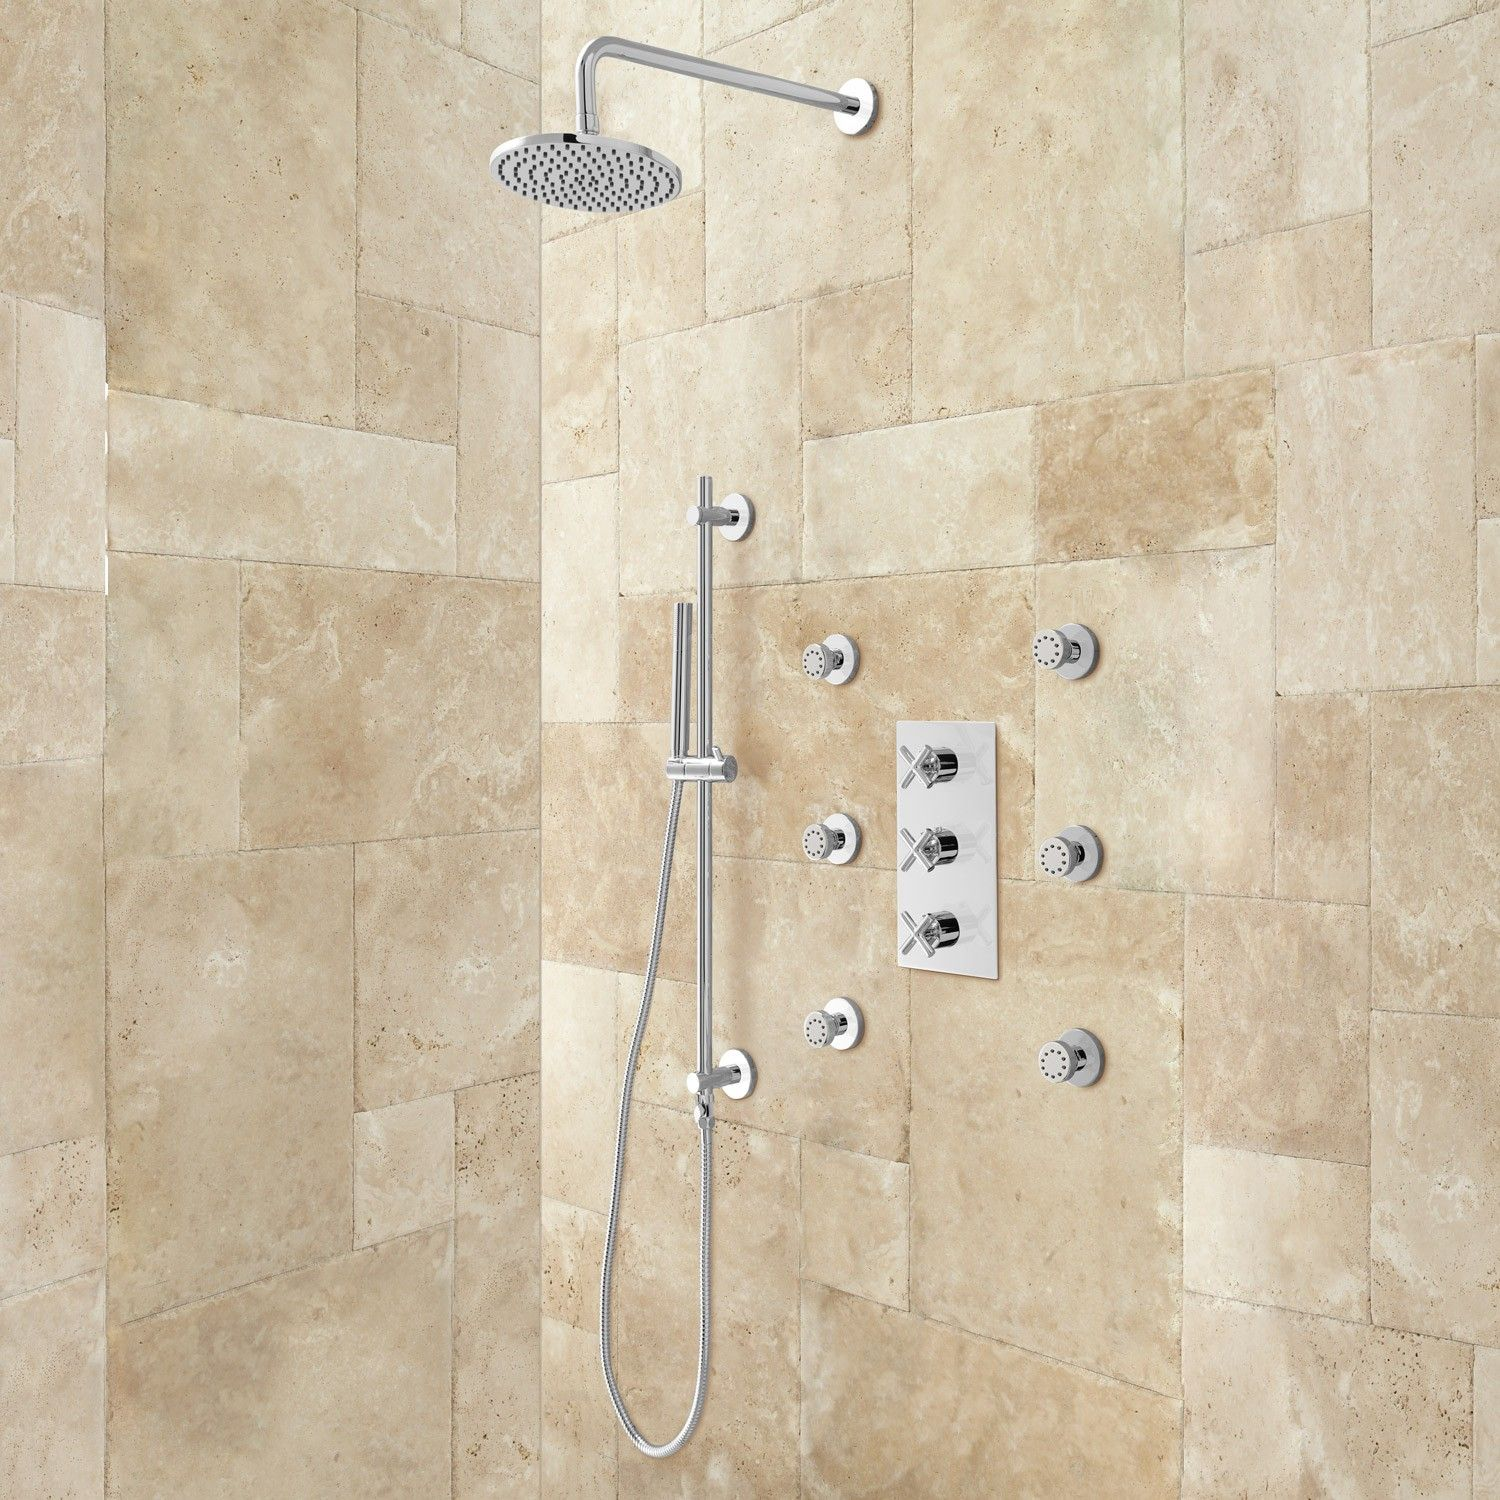 system bathmtprospect grohe tl gallery hans marble renovation inc systems tiles bathroom shower with